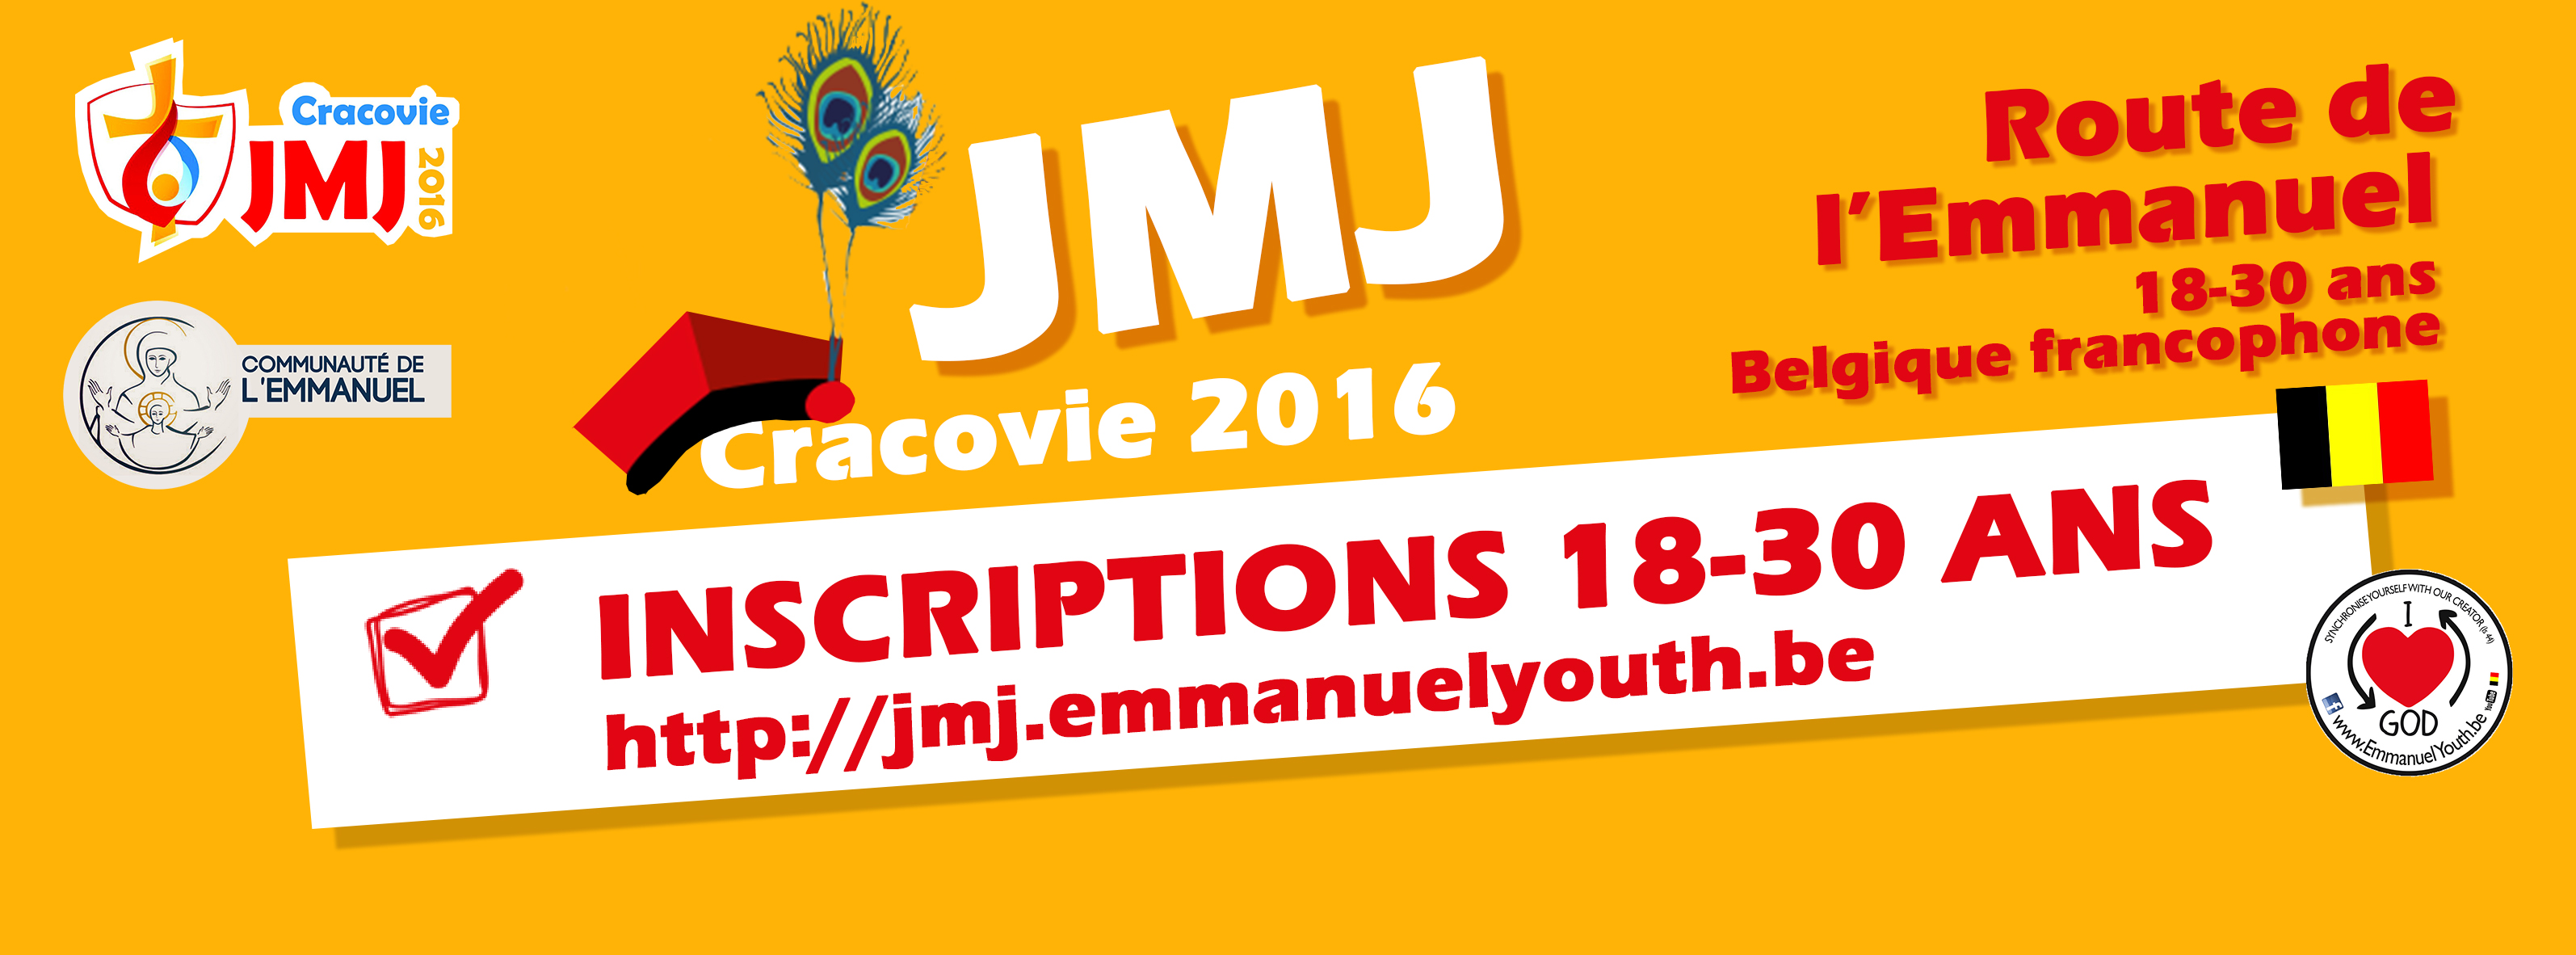 Banner-JMJ2016-inscriptions-route-1830